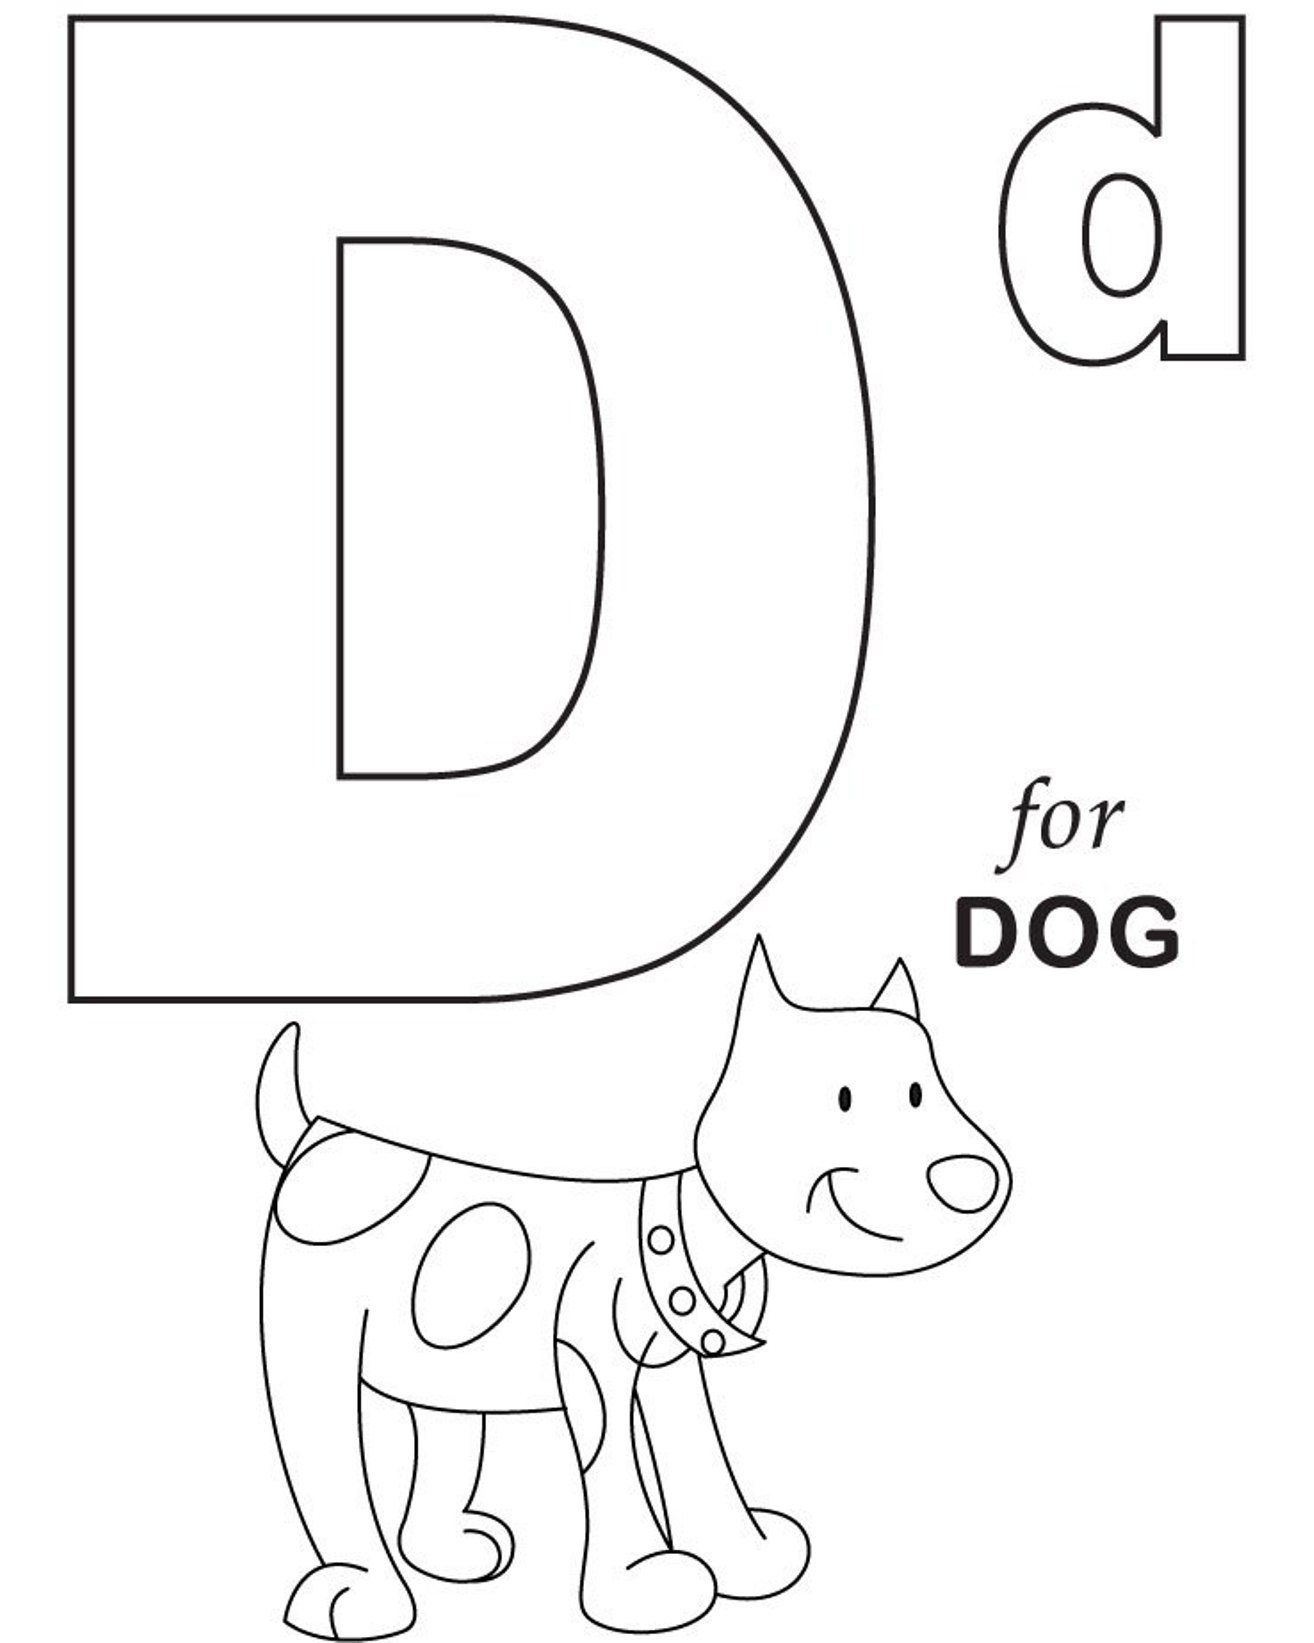 Alphabet coloring d for dog printable alphabet coloring pages d for dog printable alphabet coloring pagesfull size image